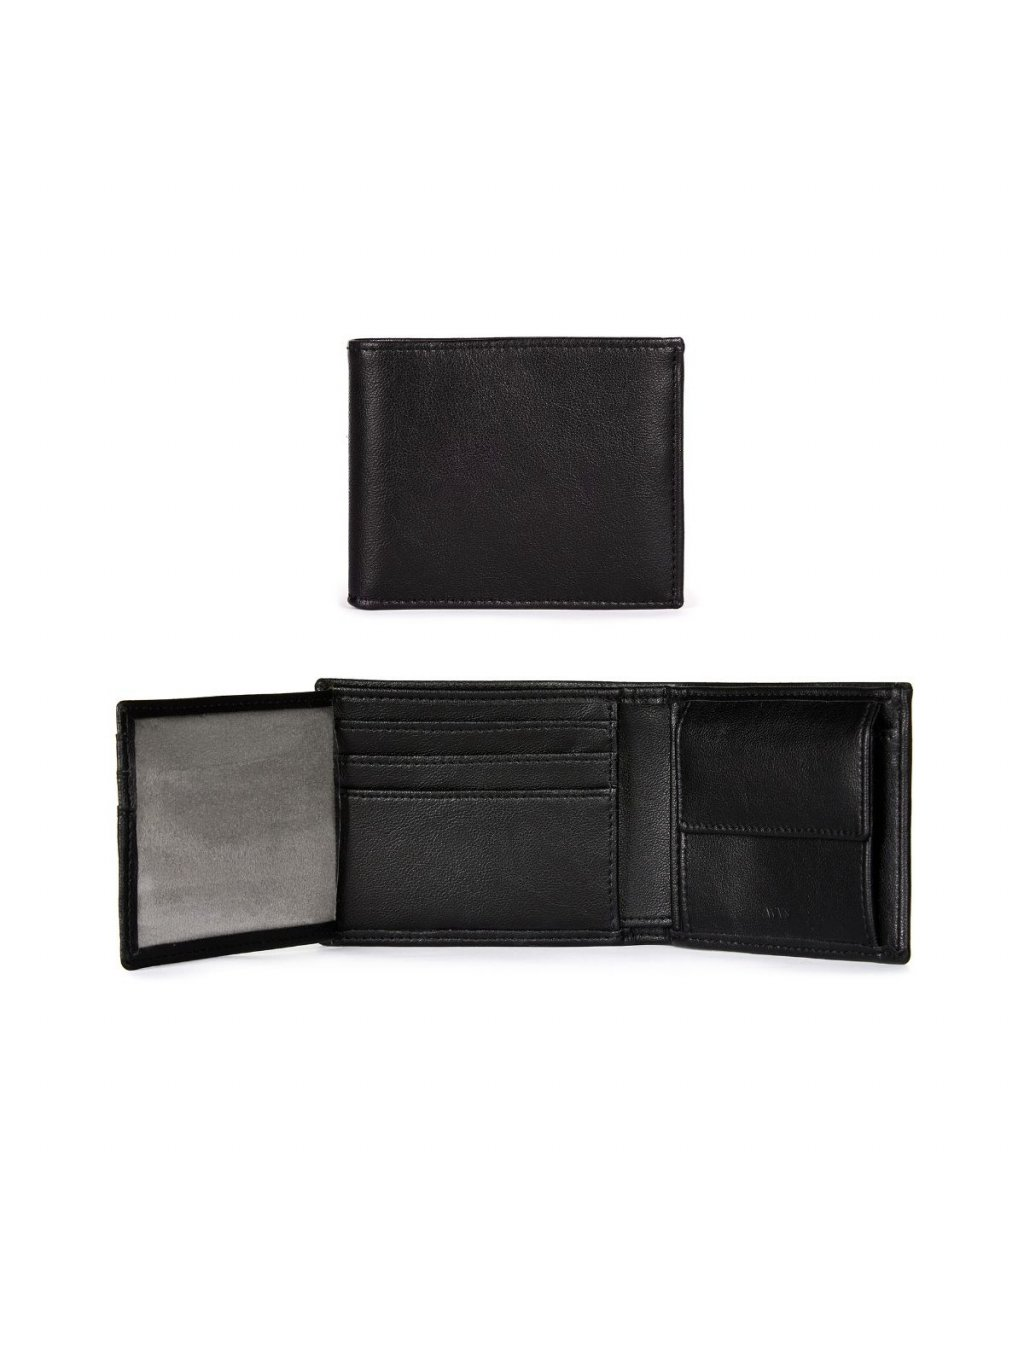 0006 trifold coin wallet 06 01 14 01 1 composition